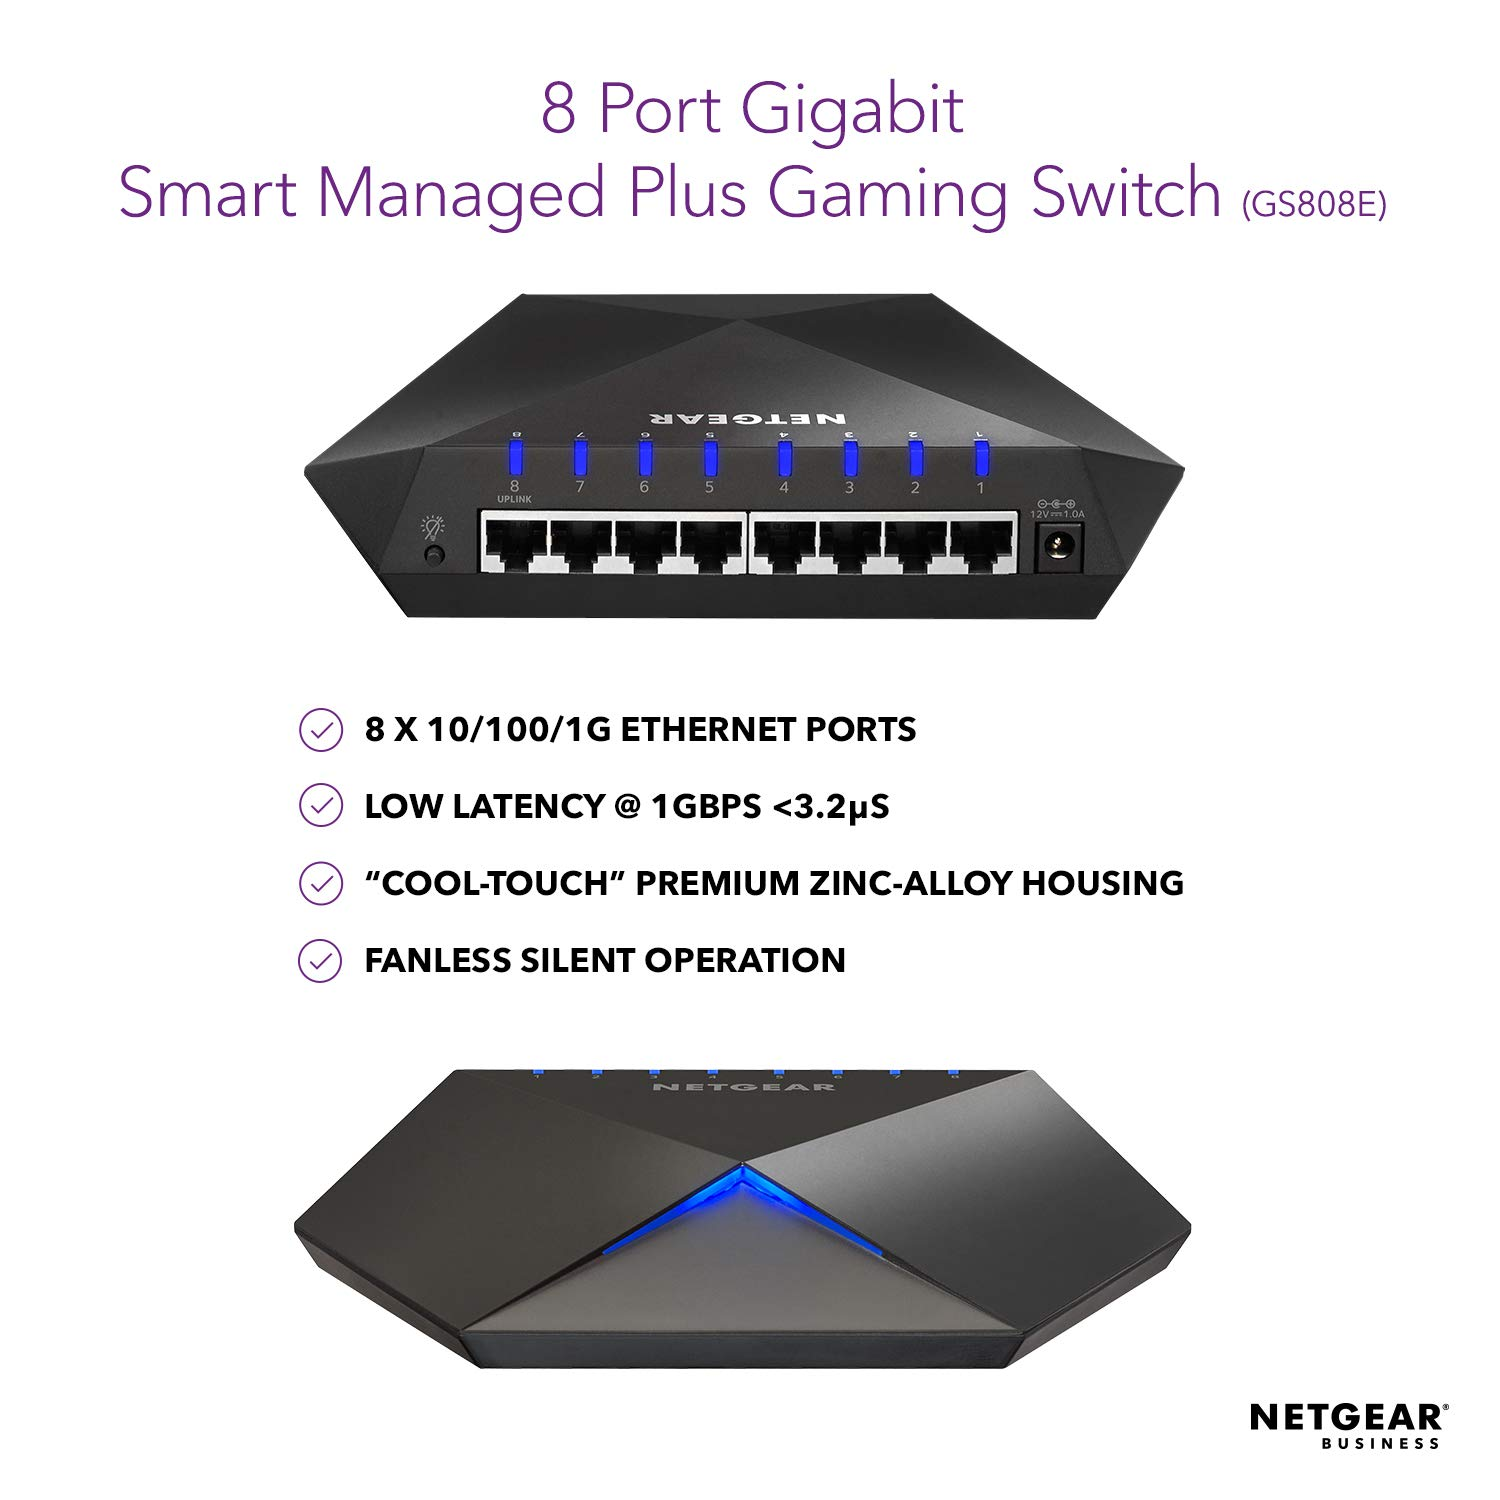 NETGEAR Nighthawk S8000 8-Port Gigabit Smart Managed Plus Gaming Switch  (GS808E) - Low Latency for Responsive Streaming, Cool-touch Zinc-alloy  Desktop